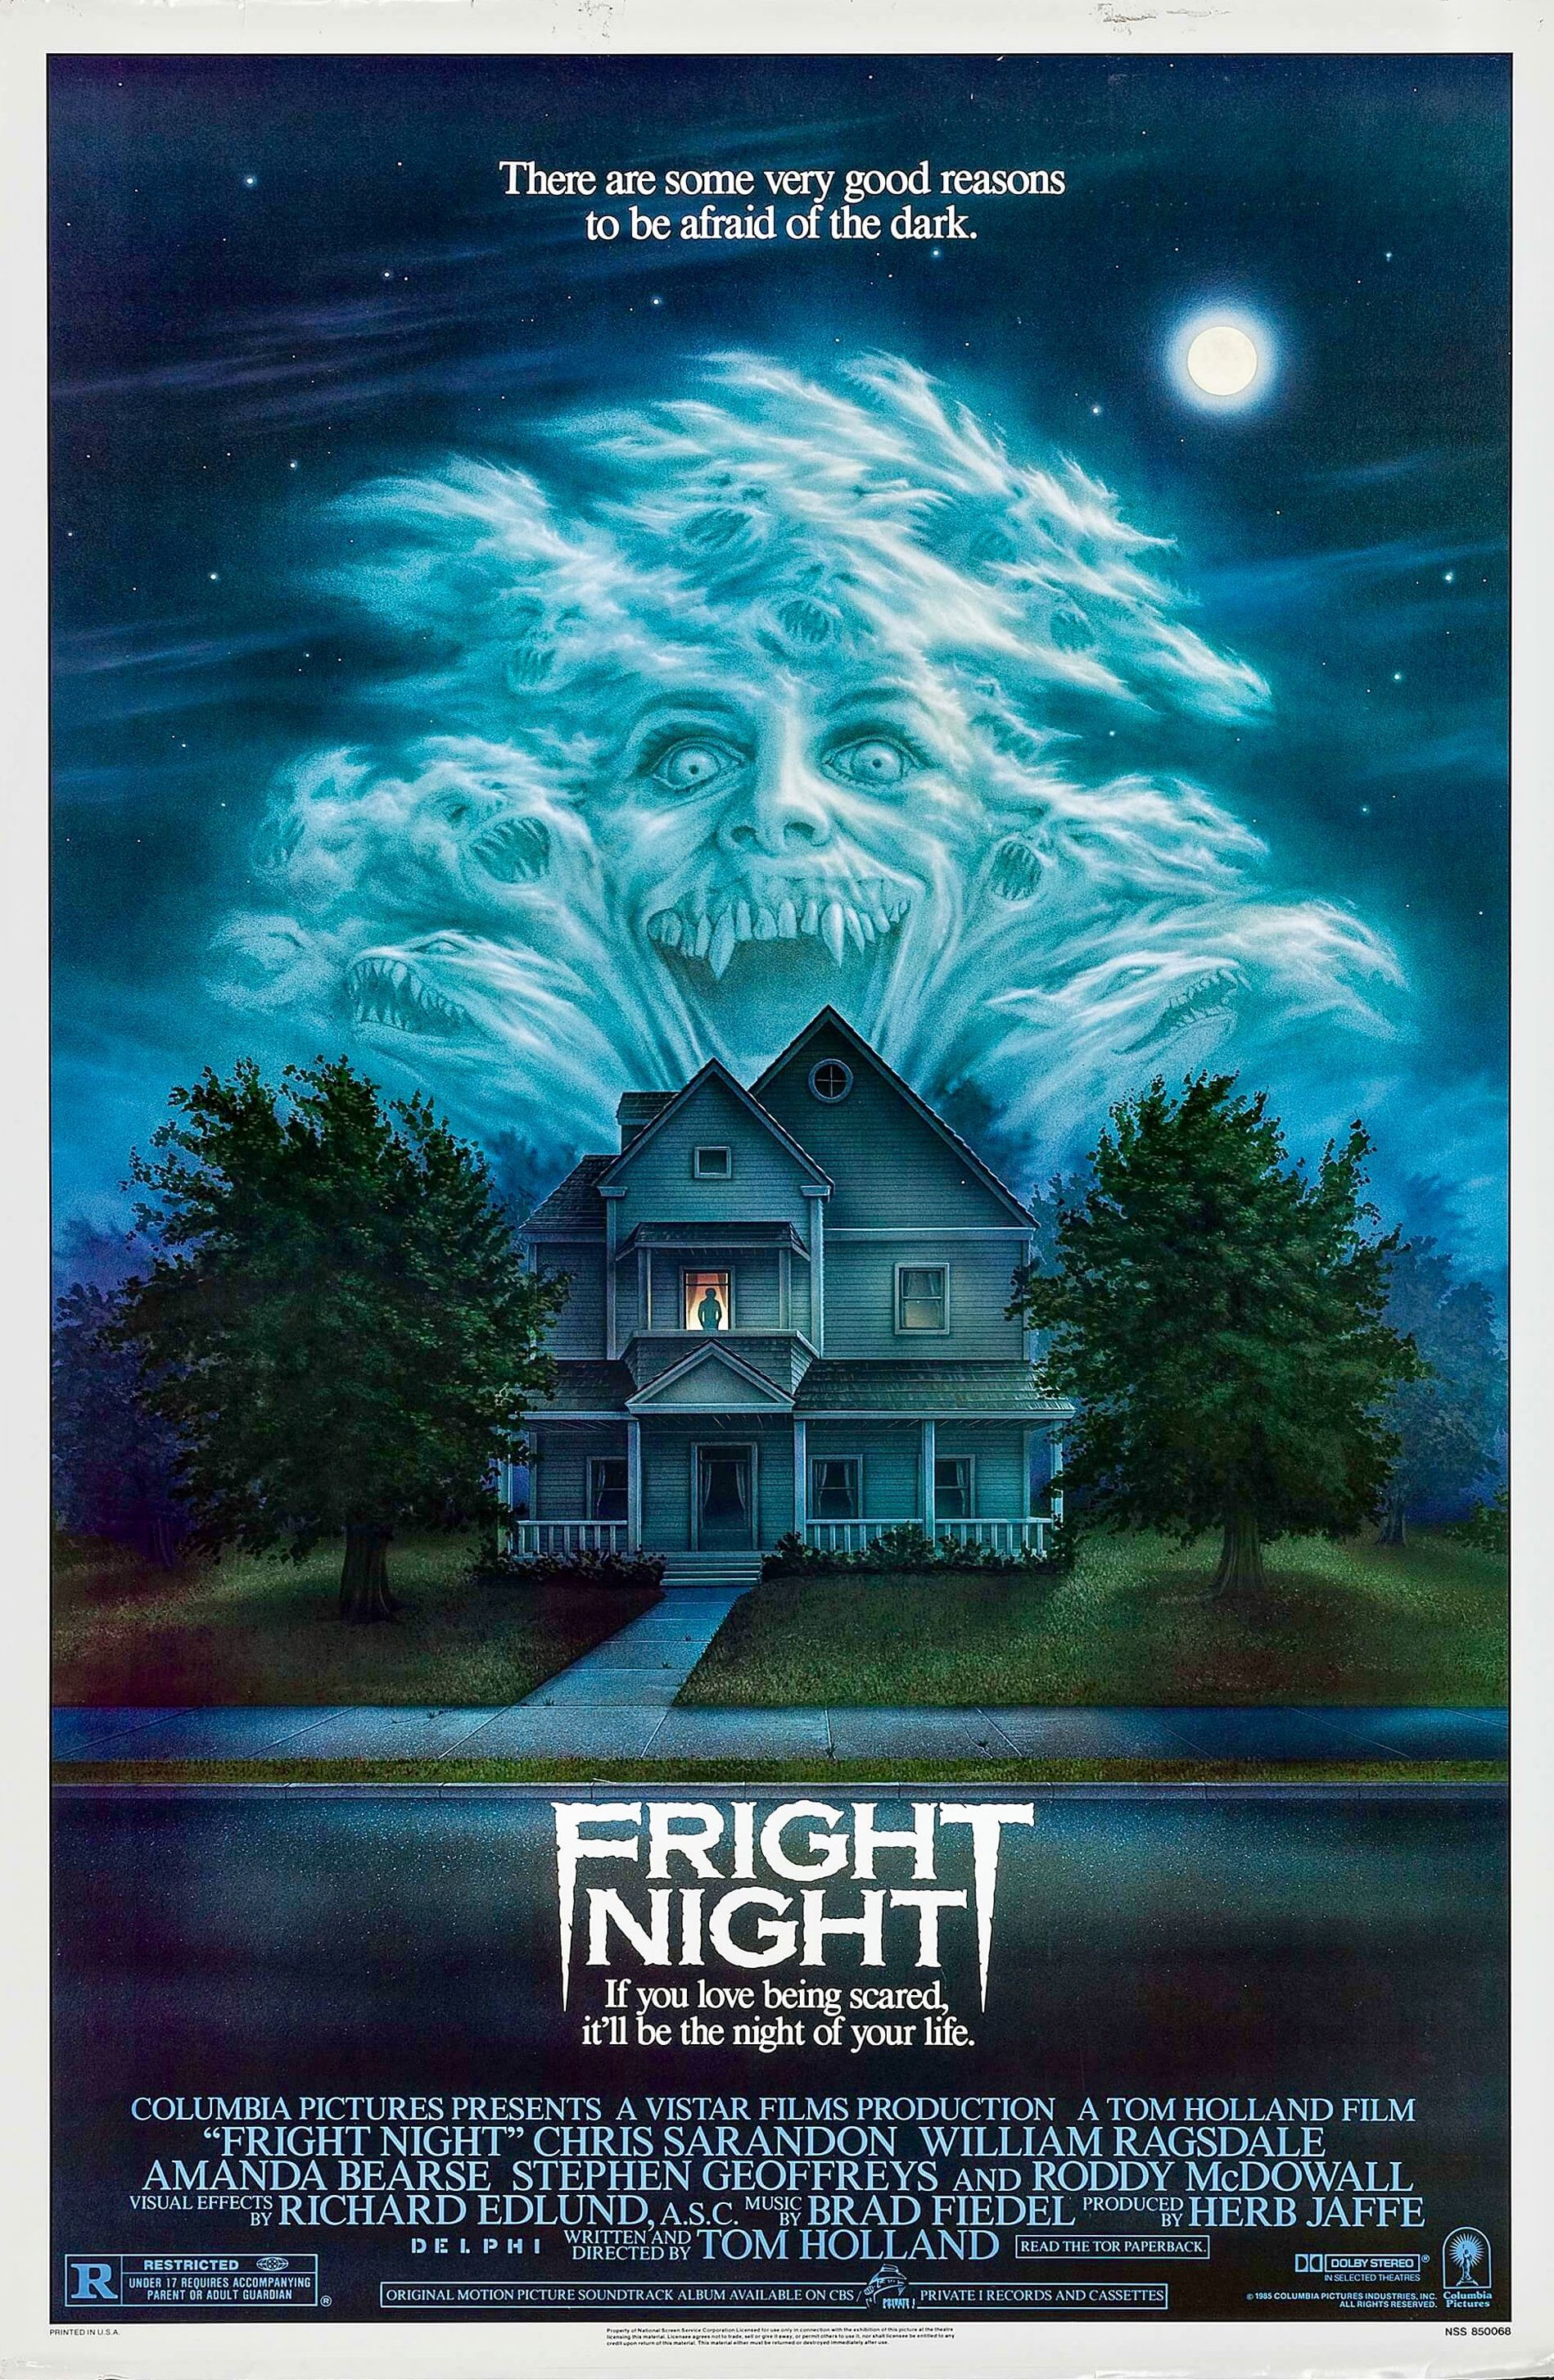 FRIGHT NIGHT [1985]